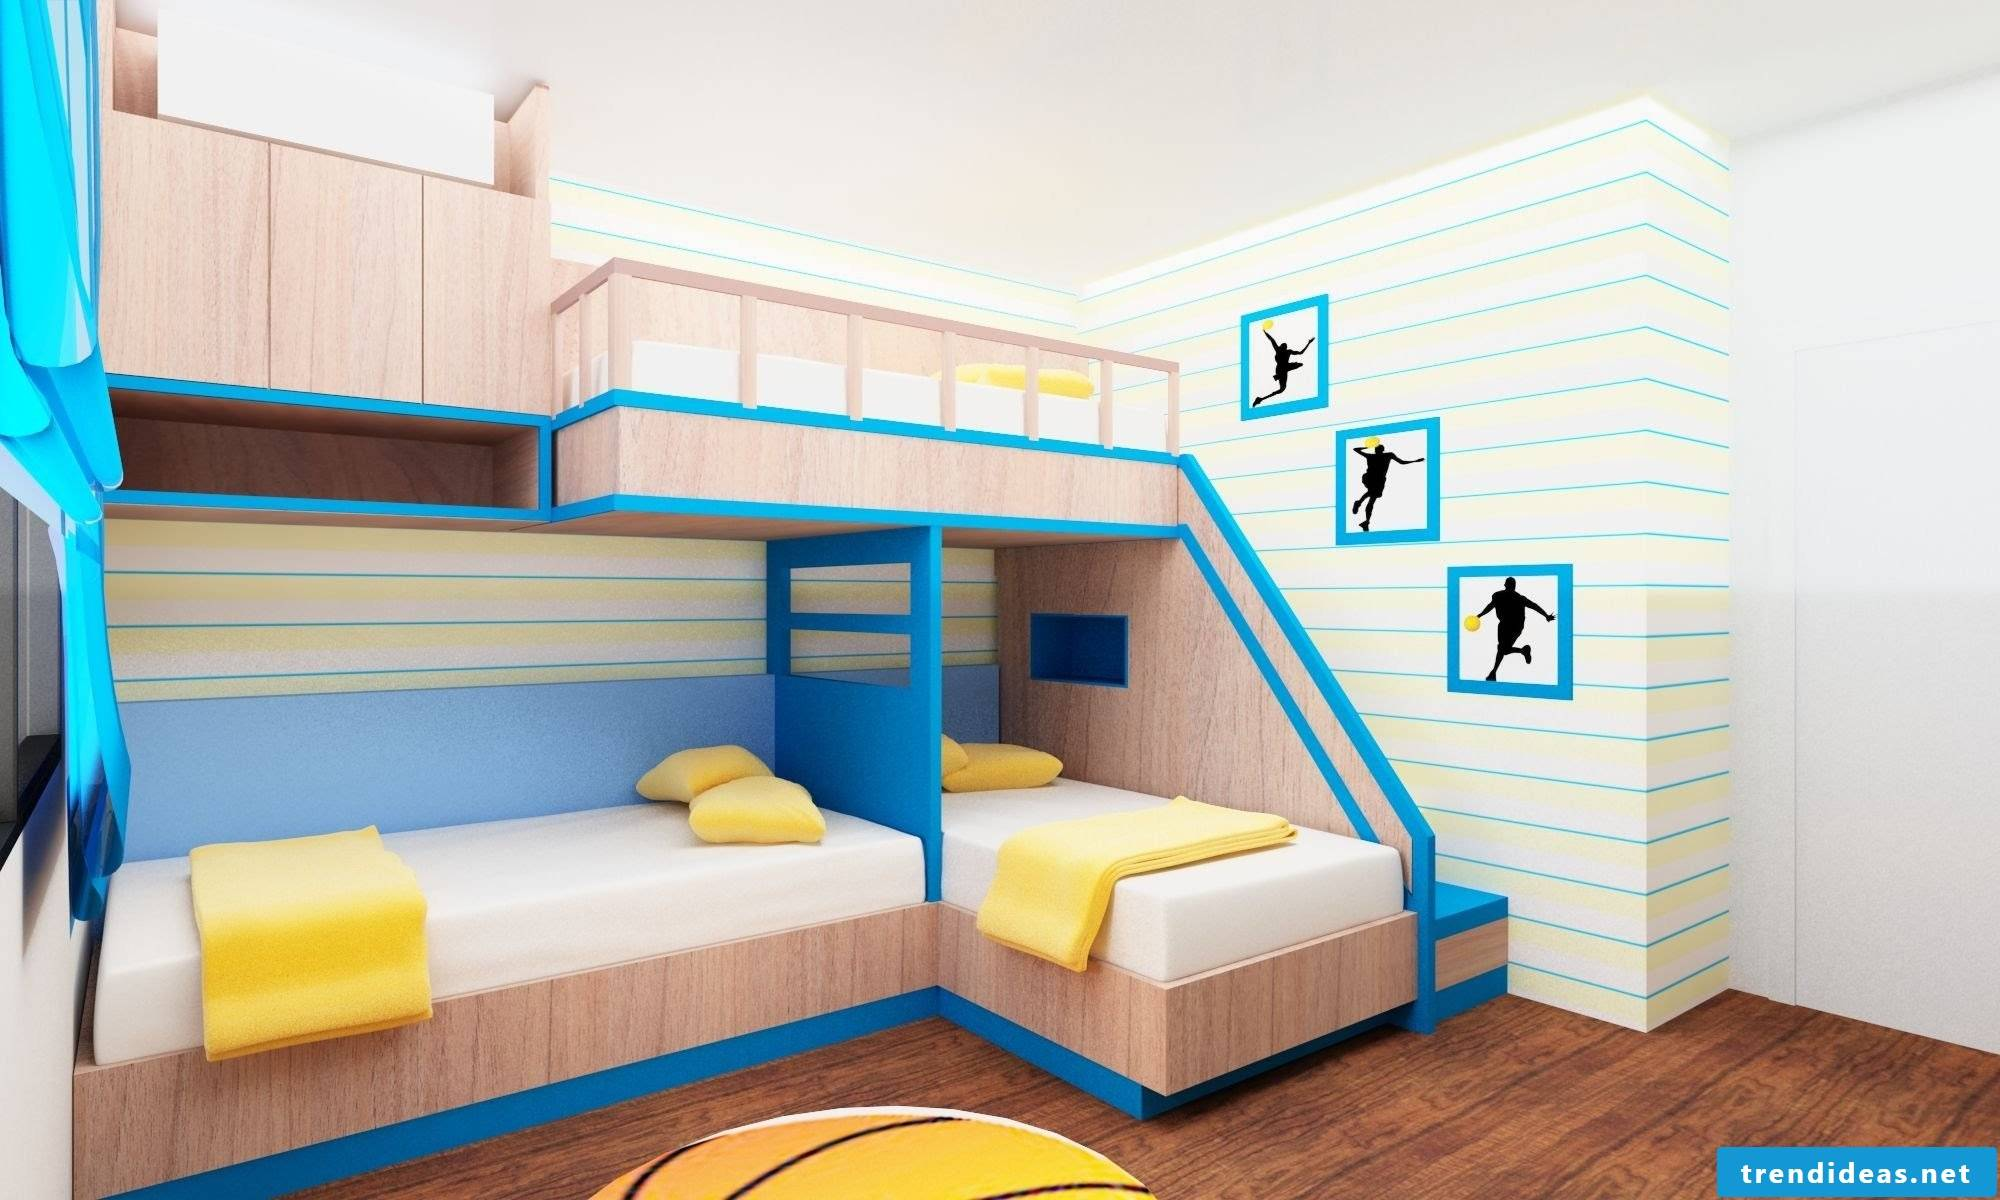 Nursery design - Two-tiered bed for three